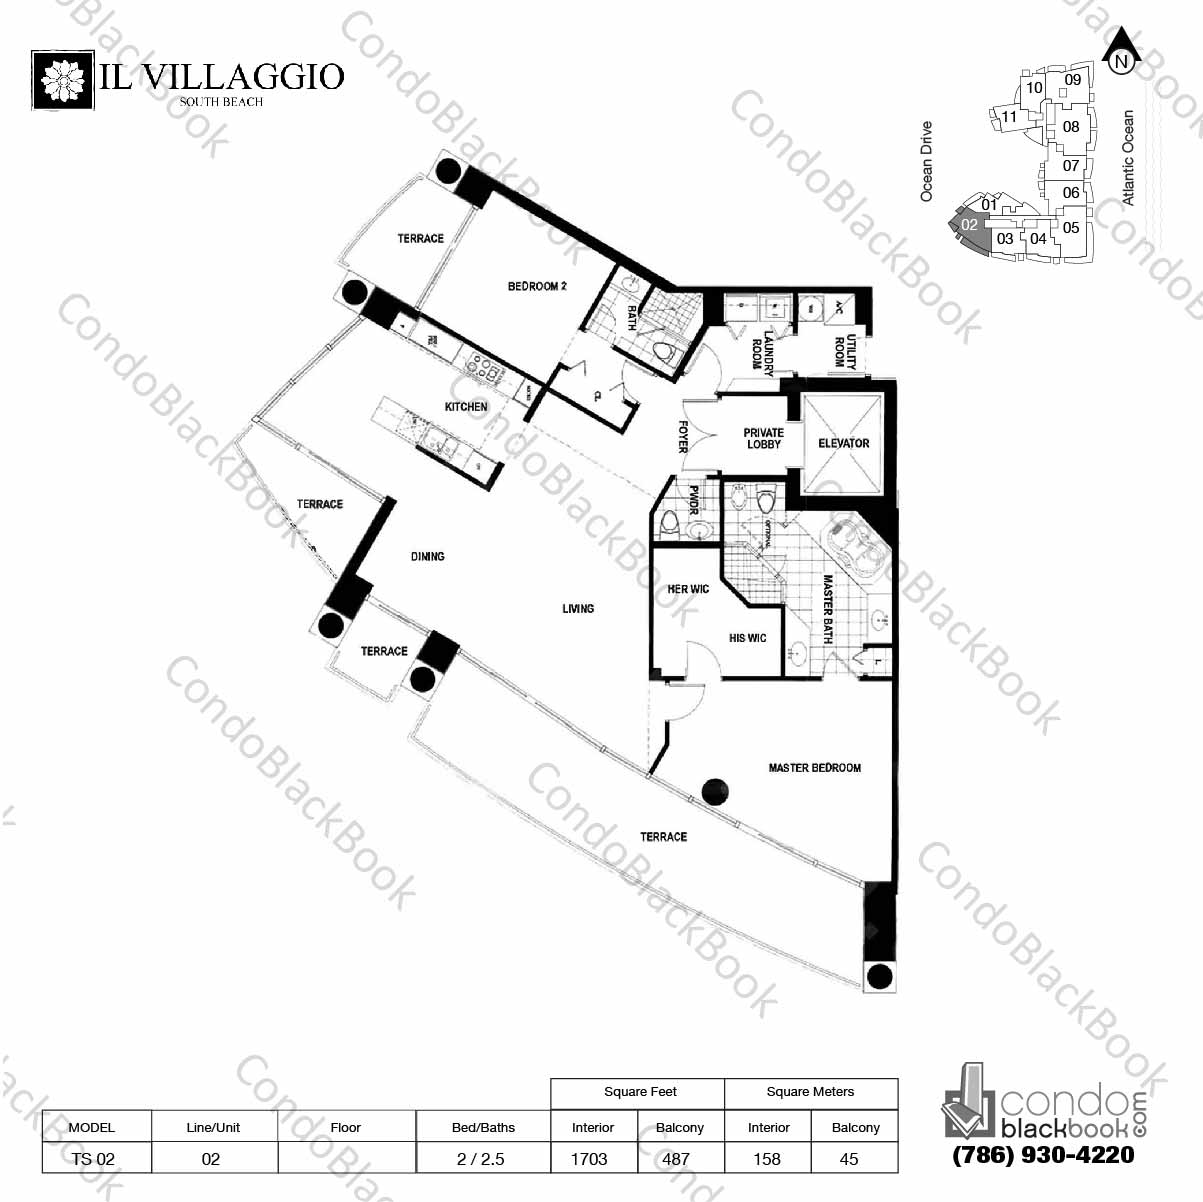 Floor plan for Il Villaggio South Beach Miami Beach, model TS-02, line 02, 2 / 2.5 bedrooms, 1703 sq ft